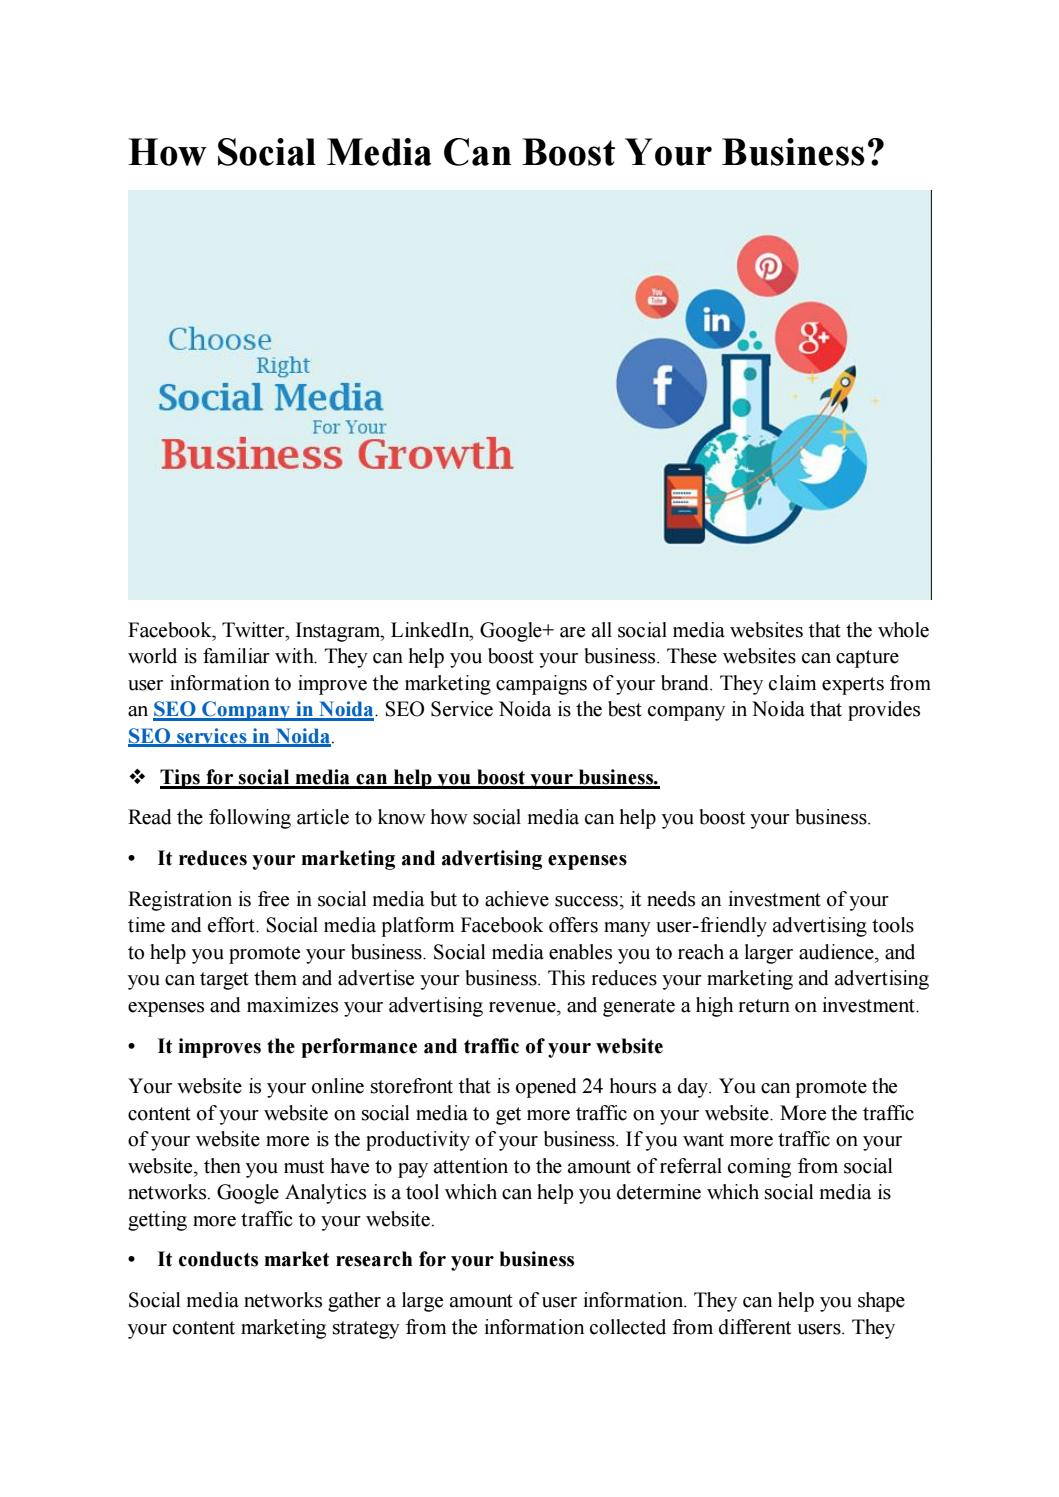 How Social Media Can Boost Your Business by Wisteria Technologies ...